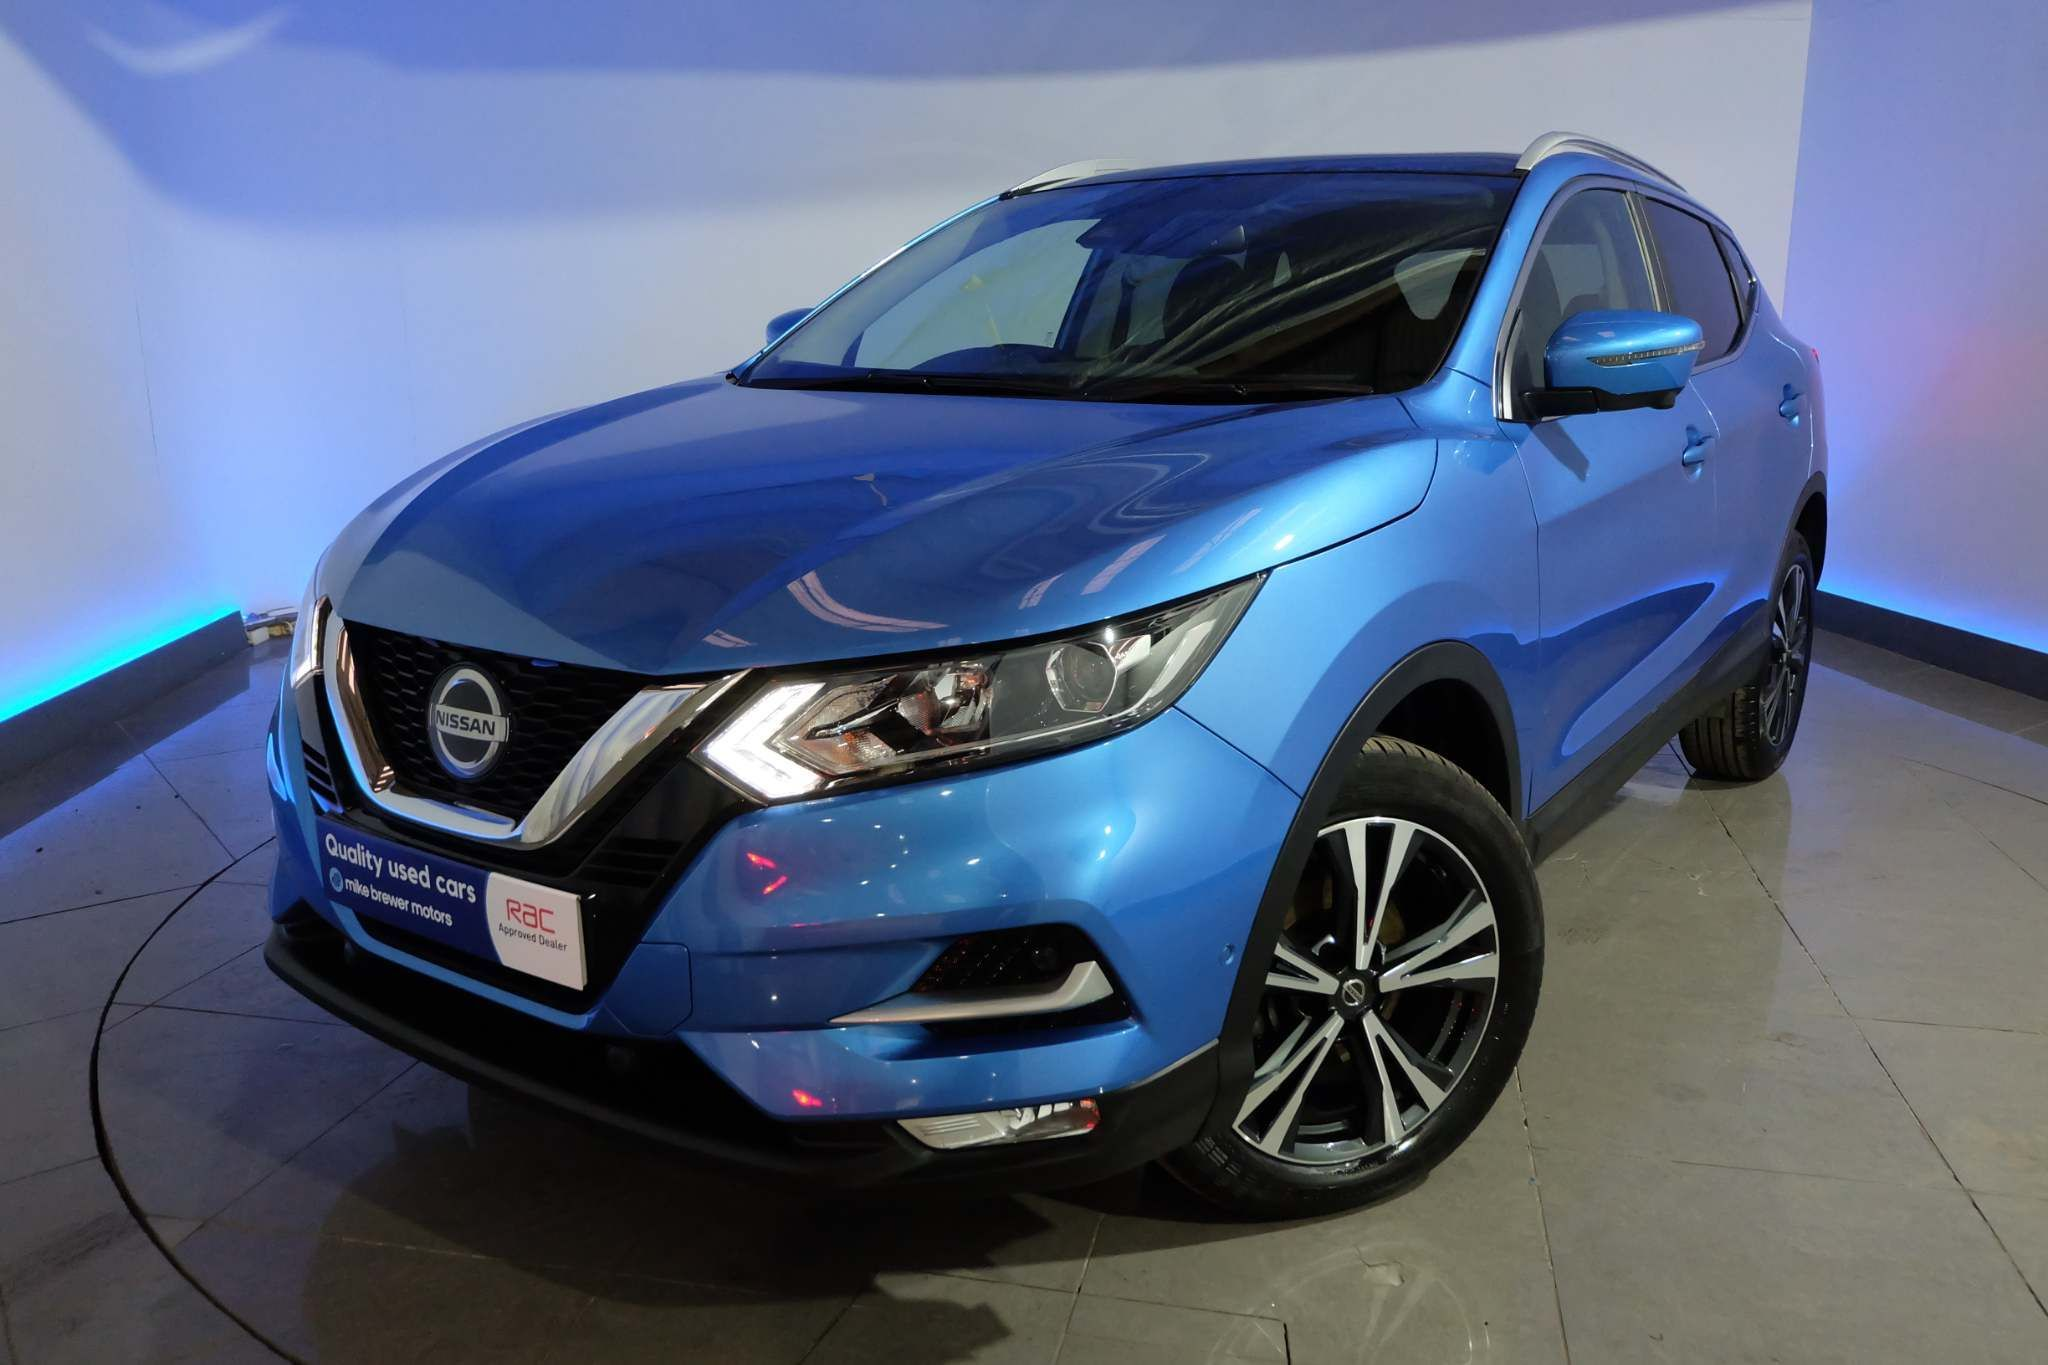 Used Nissan Qashqai 1.3 Dig-T N-Connecta (s/s) 5dr